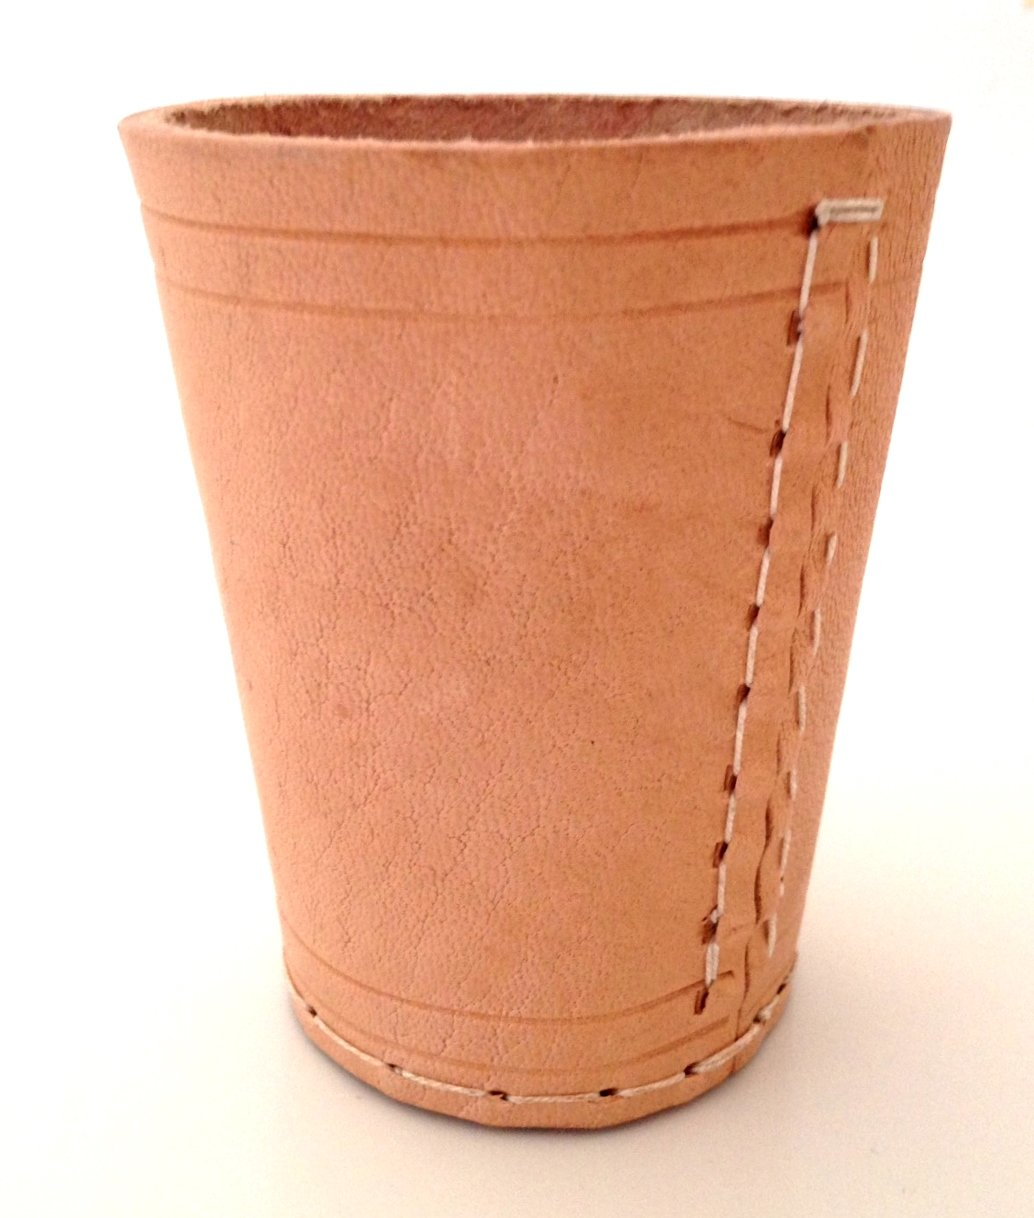 NEW HAND MADE NATURAL REAL LEATHER DICE CUP SHAKER POT - UK SELLER Harrington Marley